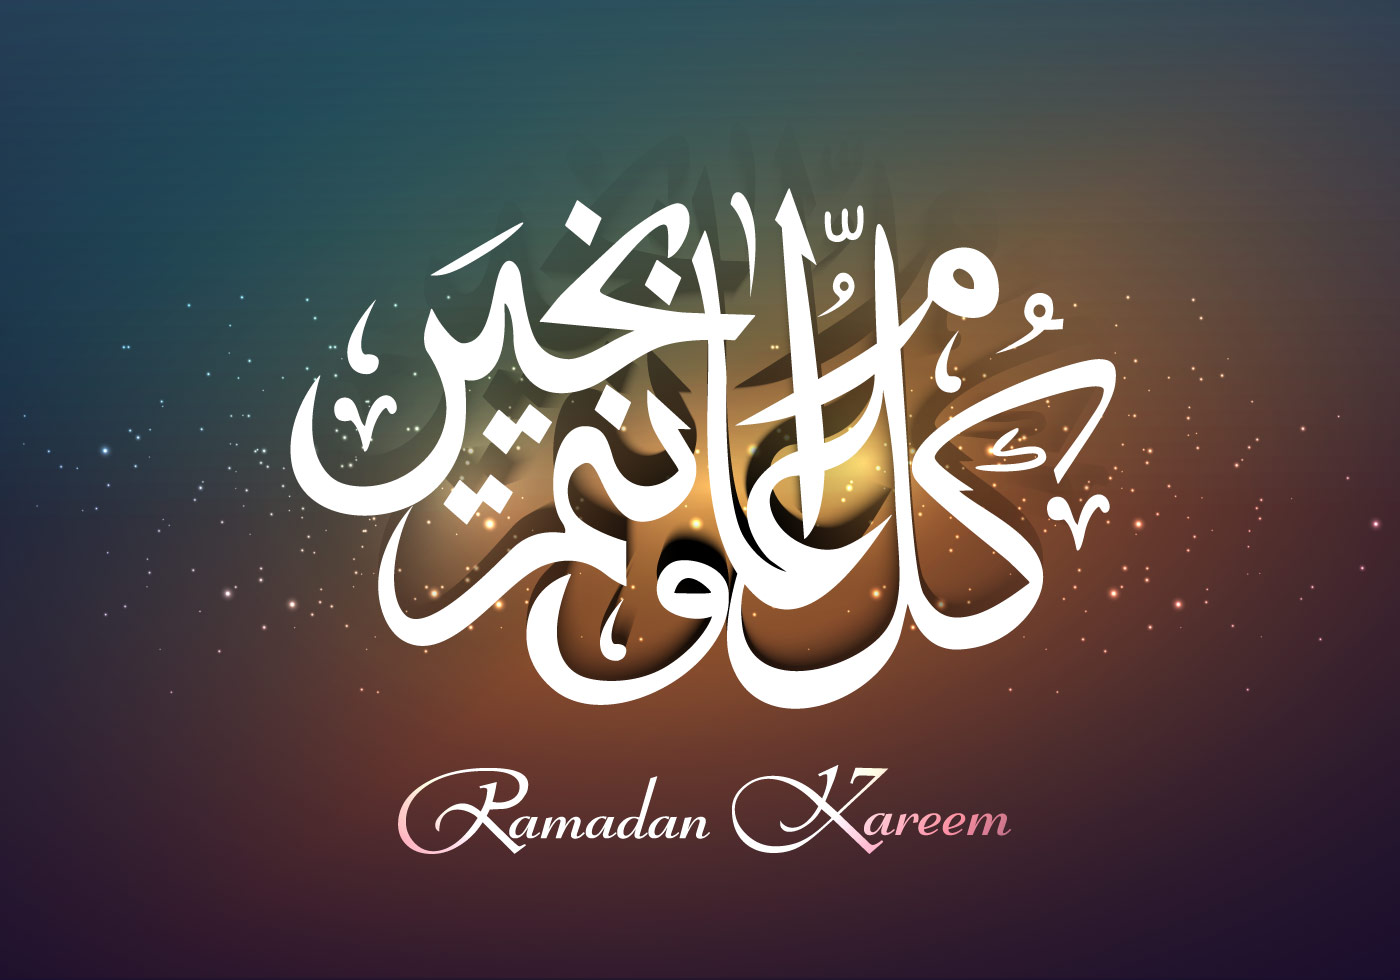 Ramadan Kareem Card With Arabic Islamic Calligraphy Text Download